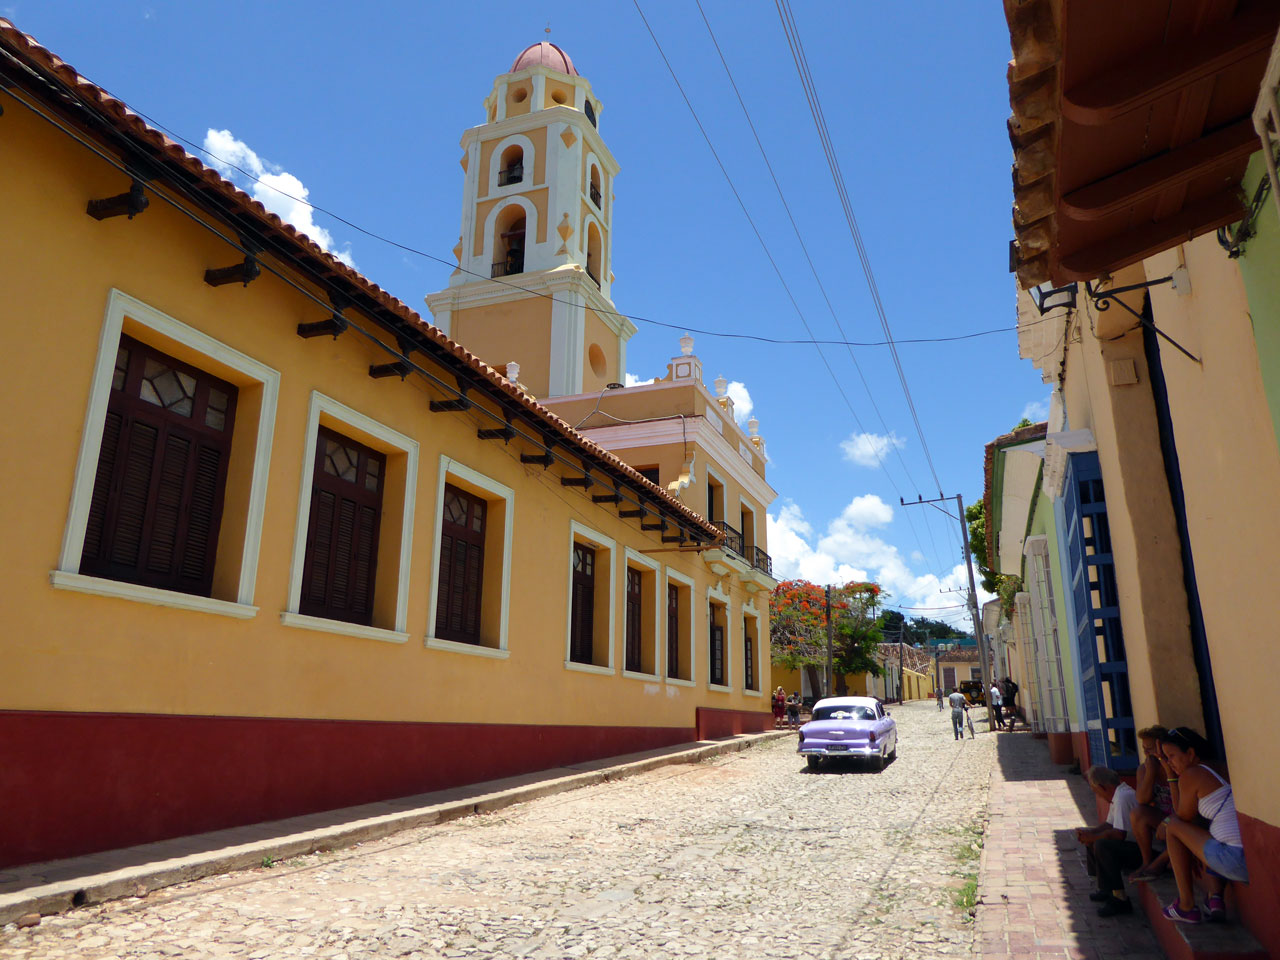 Old bell tower in Trinidad, Cuba